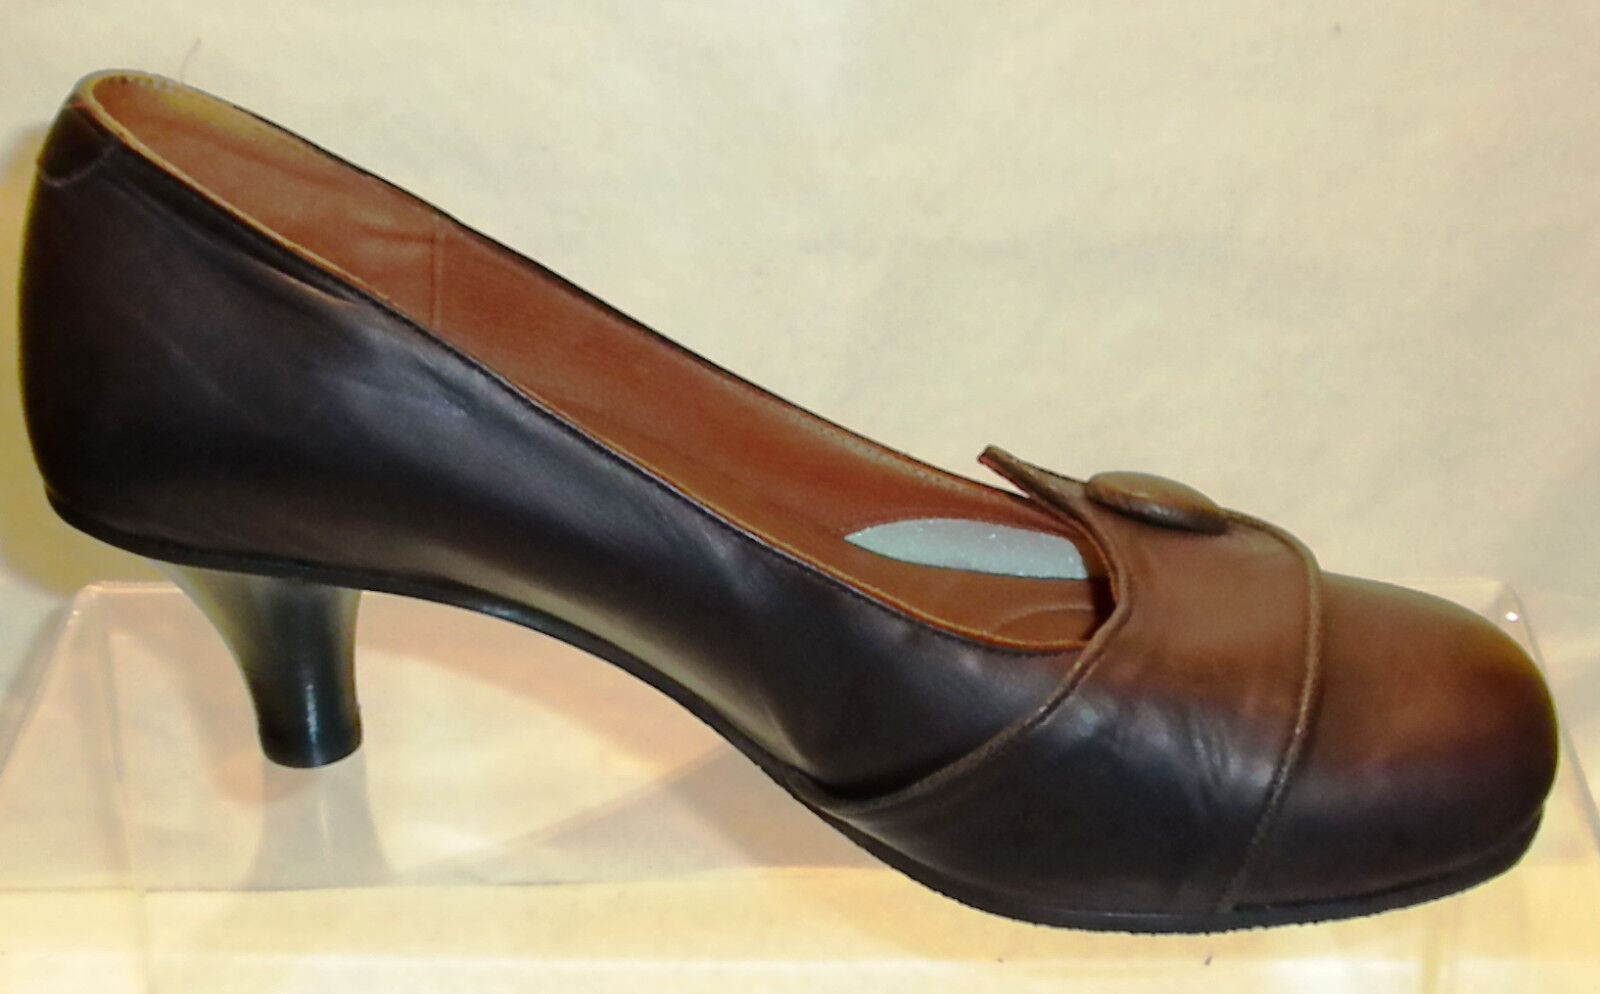 Lisa Nading 'Best' Pumps/Kitten Heels  NEW- in Mocha - BRAND NEW-  Eu 36.5 bdc6f2